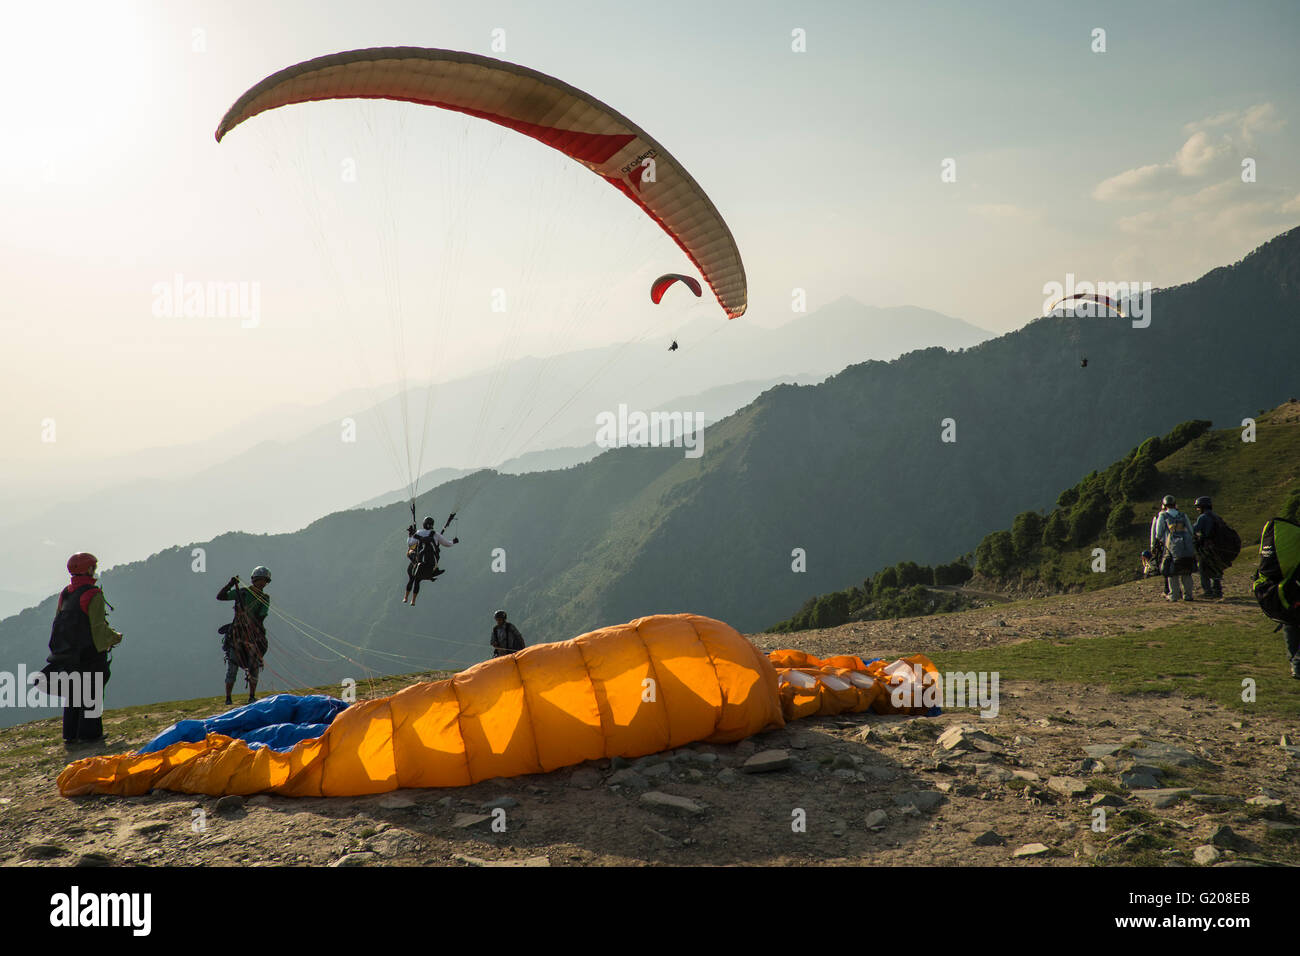 A paraglider flyer gets ready for take off at Bir Billing, Himachal Pradesh - Stock Image